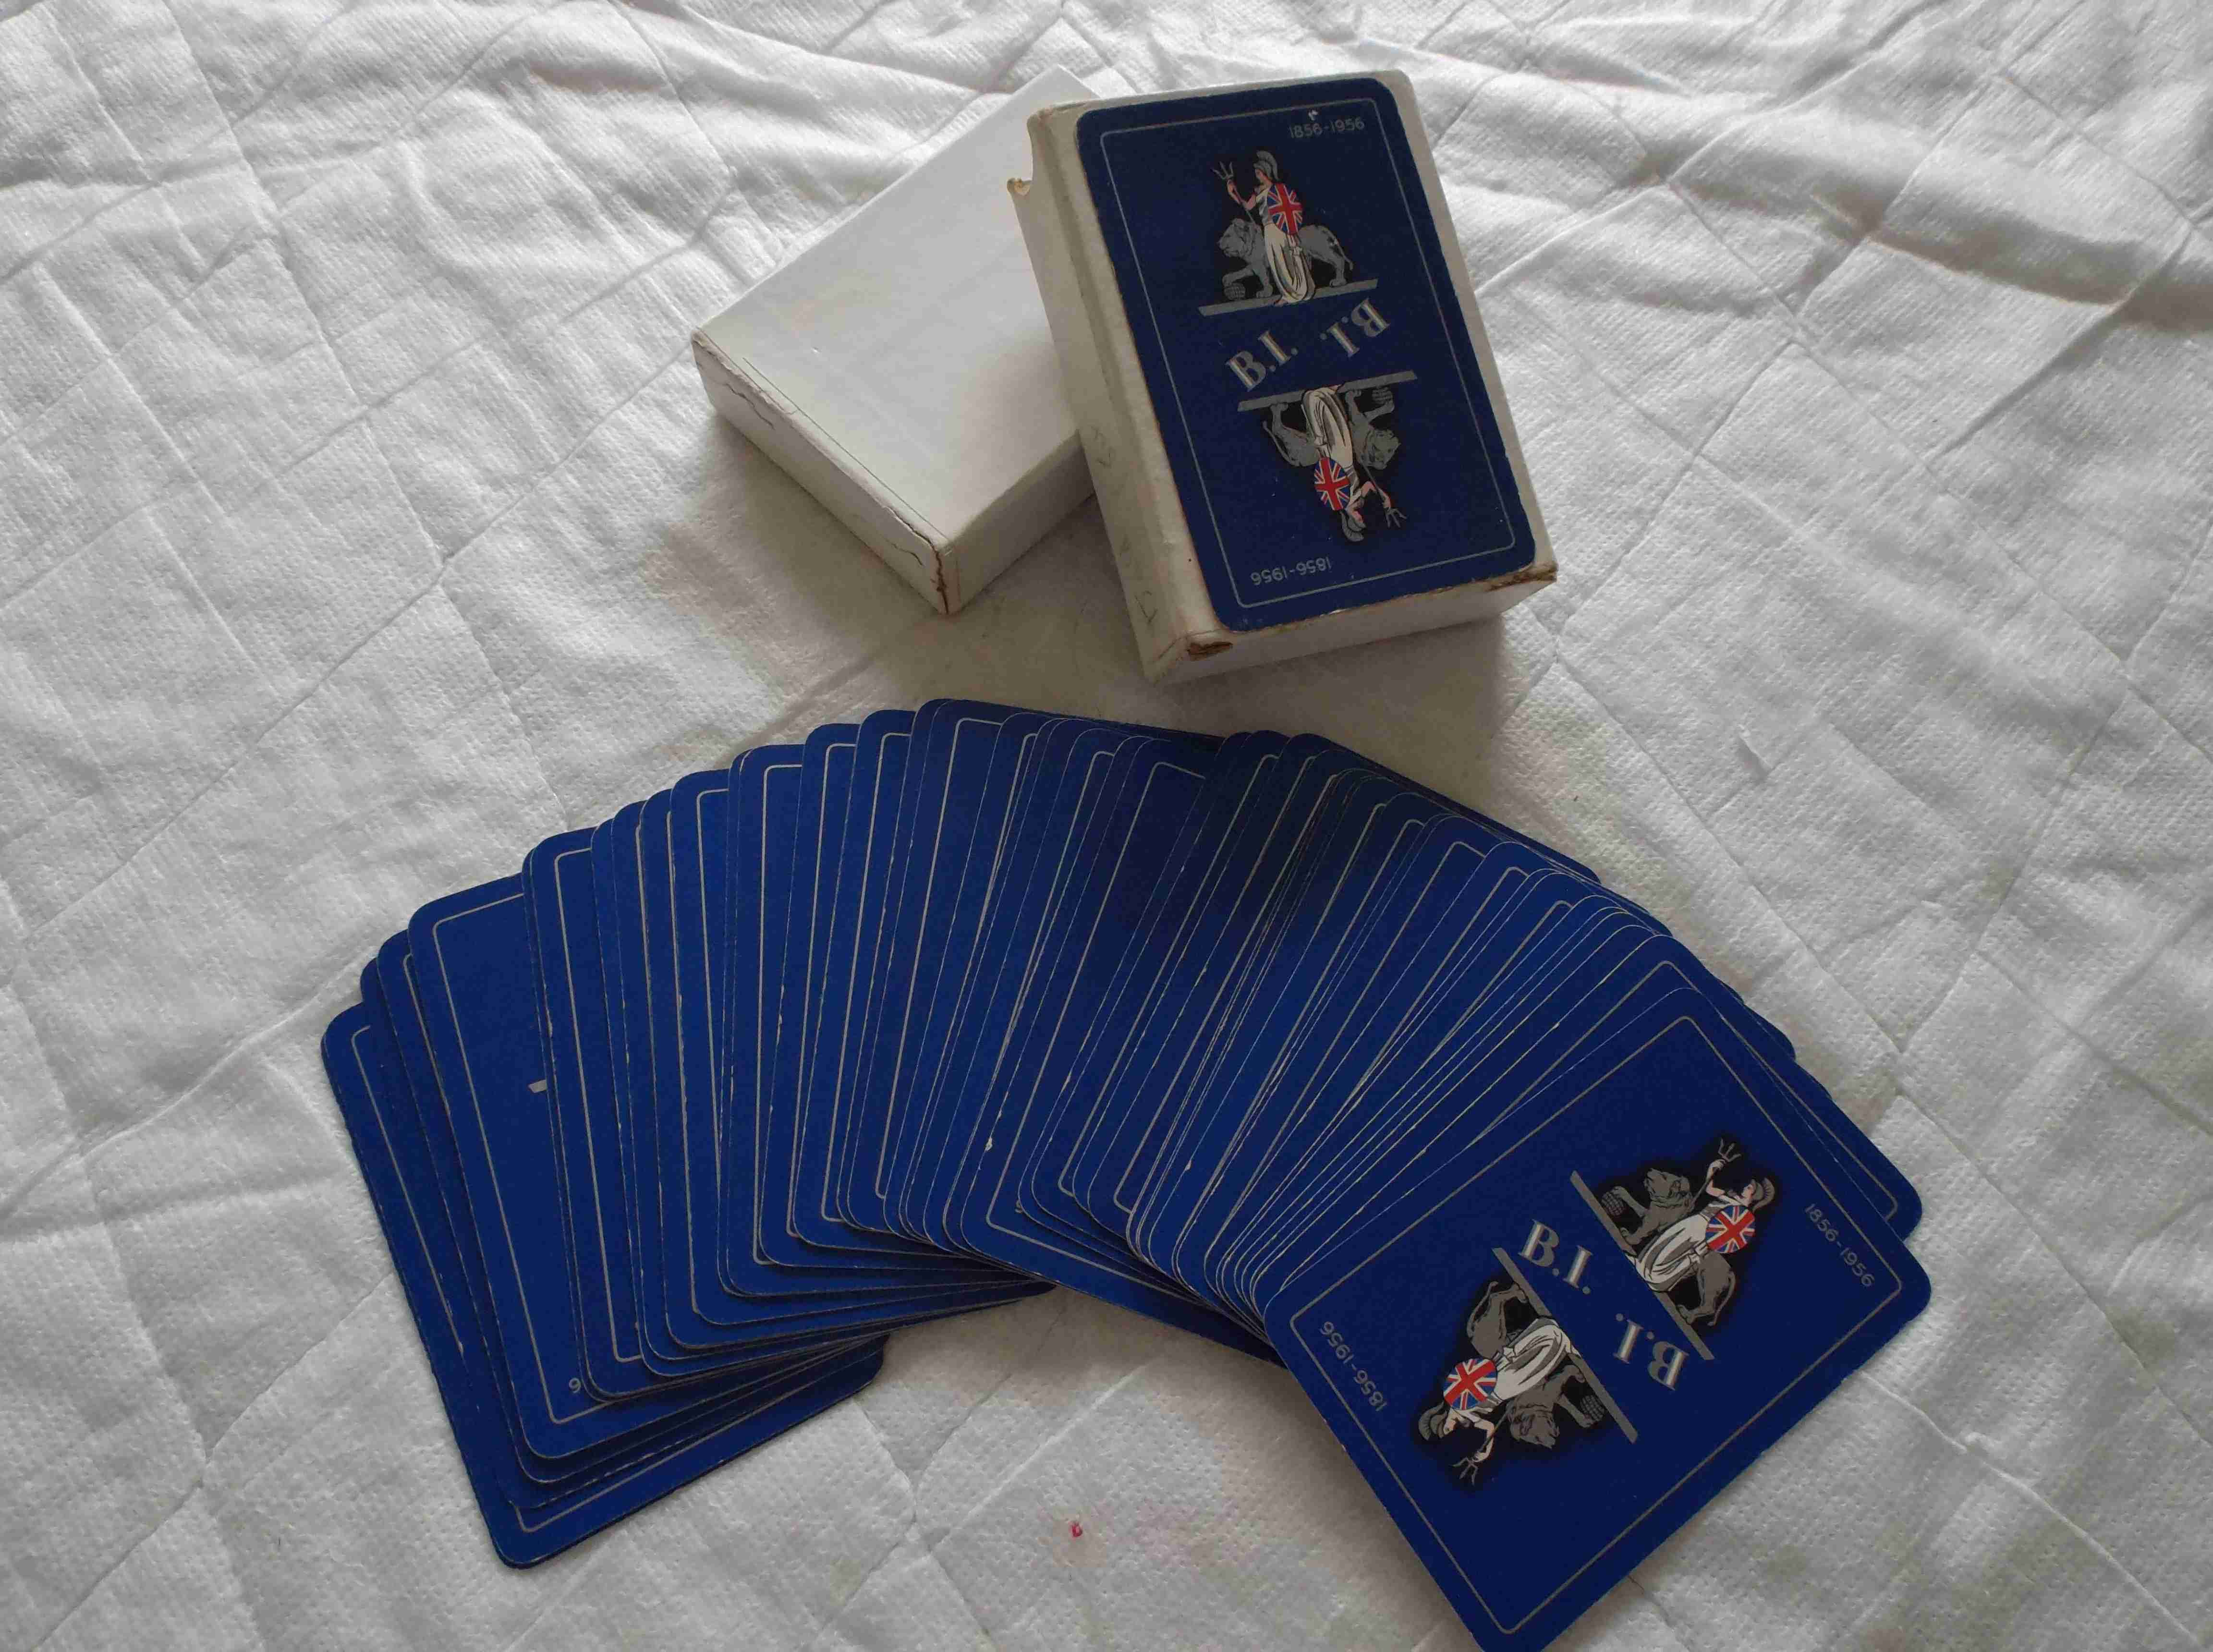 SET OF SOUVENIR PLAYING CARDS FROM THE BRITISH INDIA STEAM NAVIGATION COMPANY